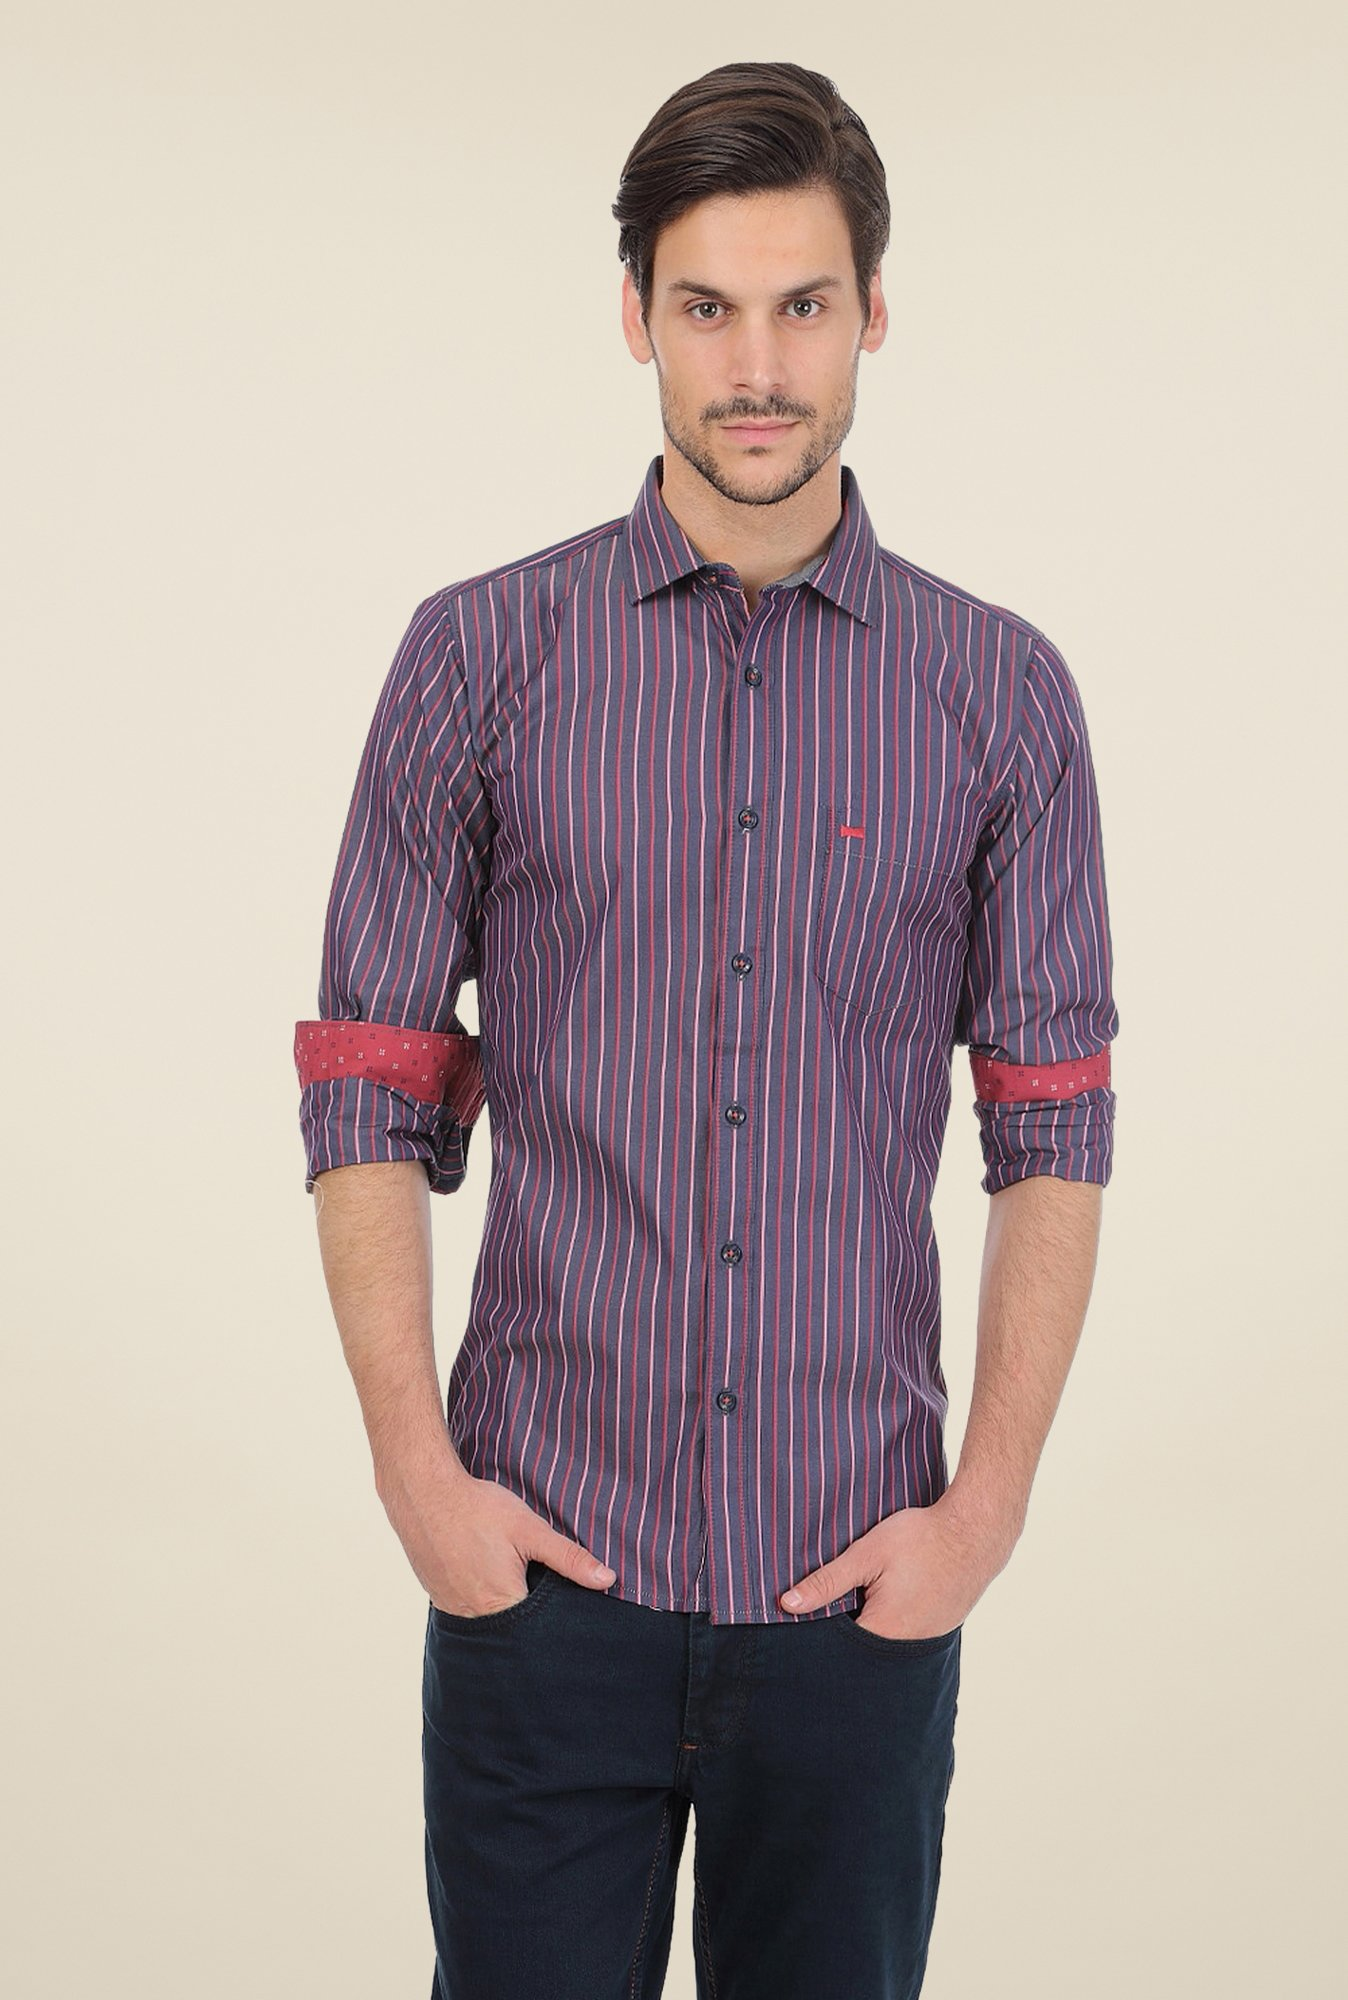 Basics Purple Striped Shirt